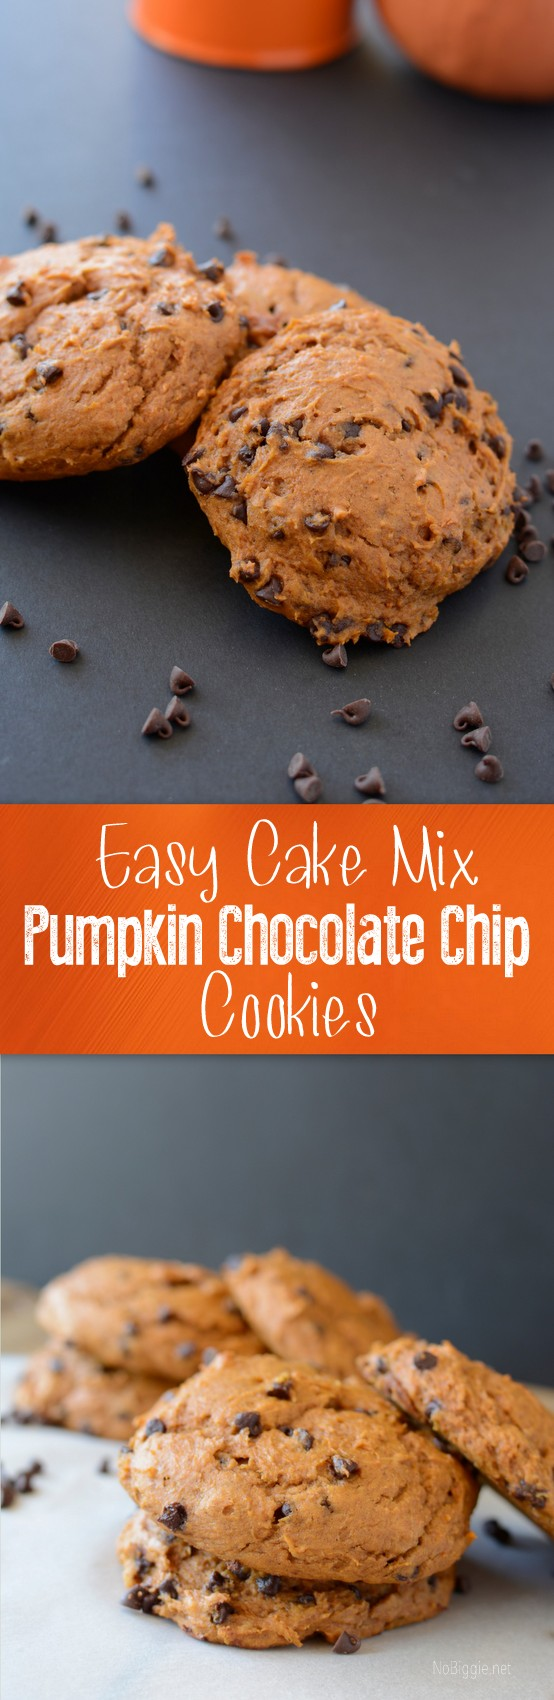 Recipe Pumpkin Chocolate Chip Cookies Spice Cake Mix